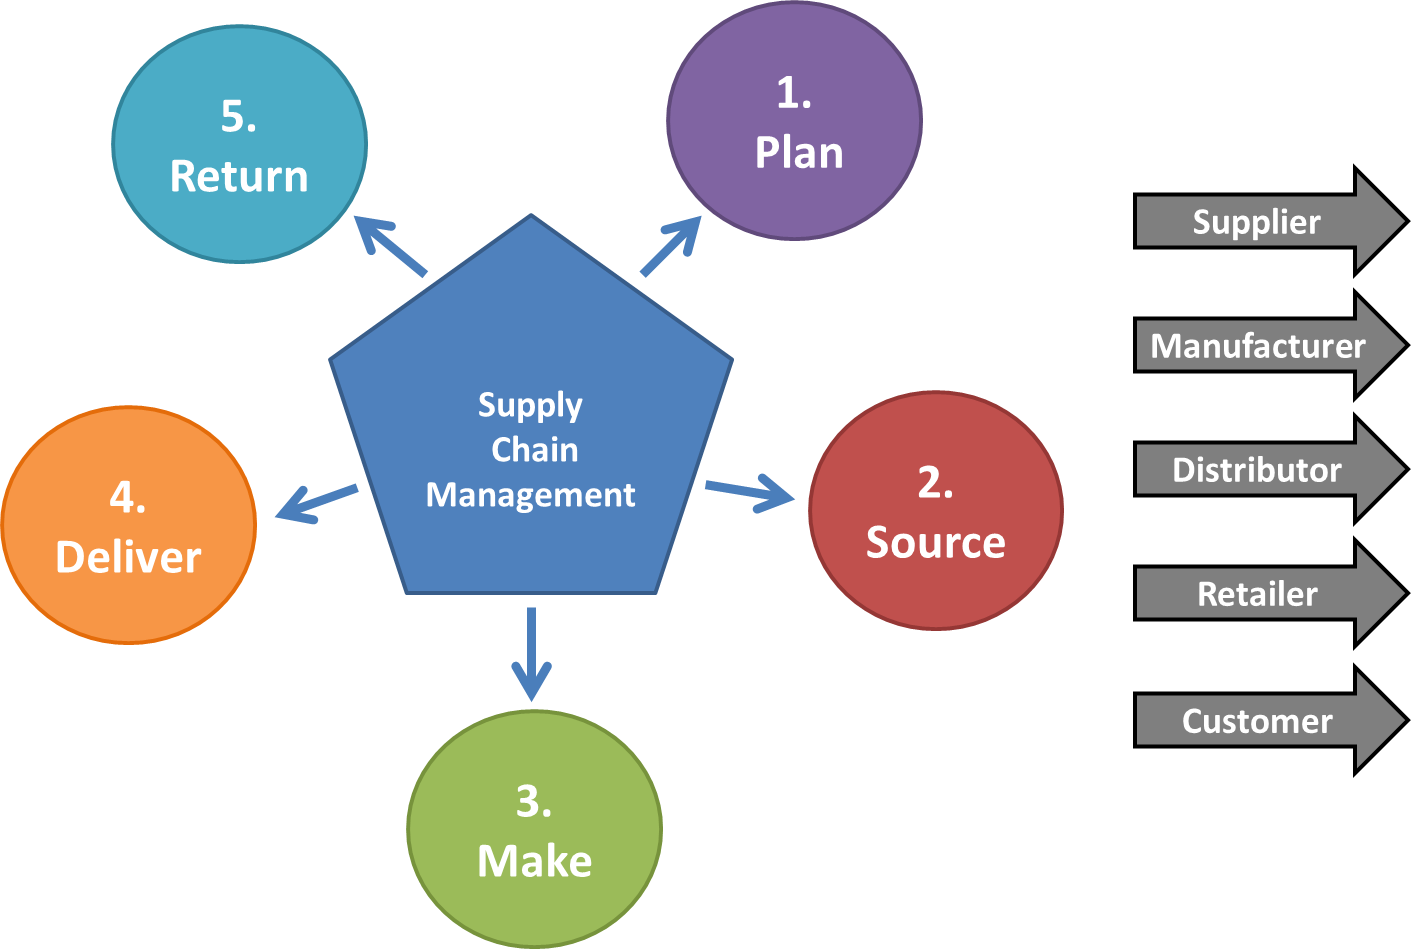 supply chain management is primarily